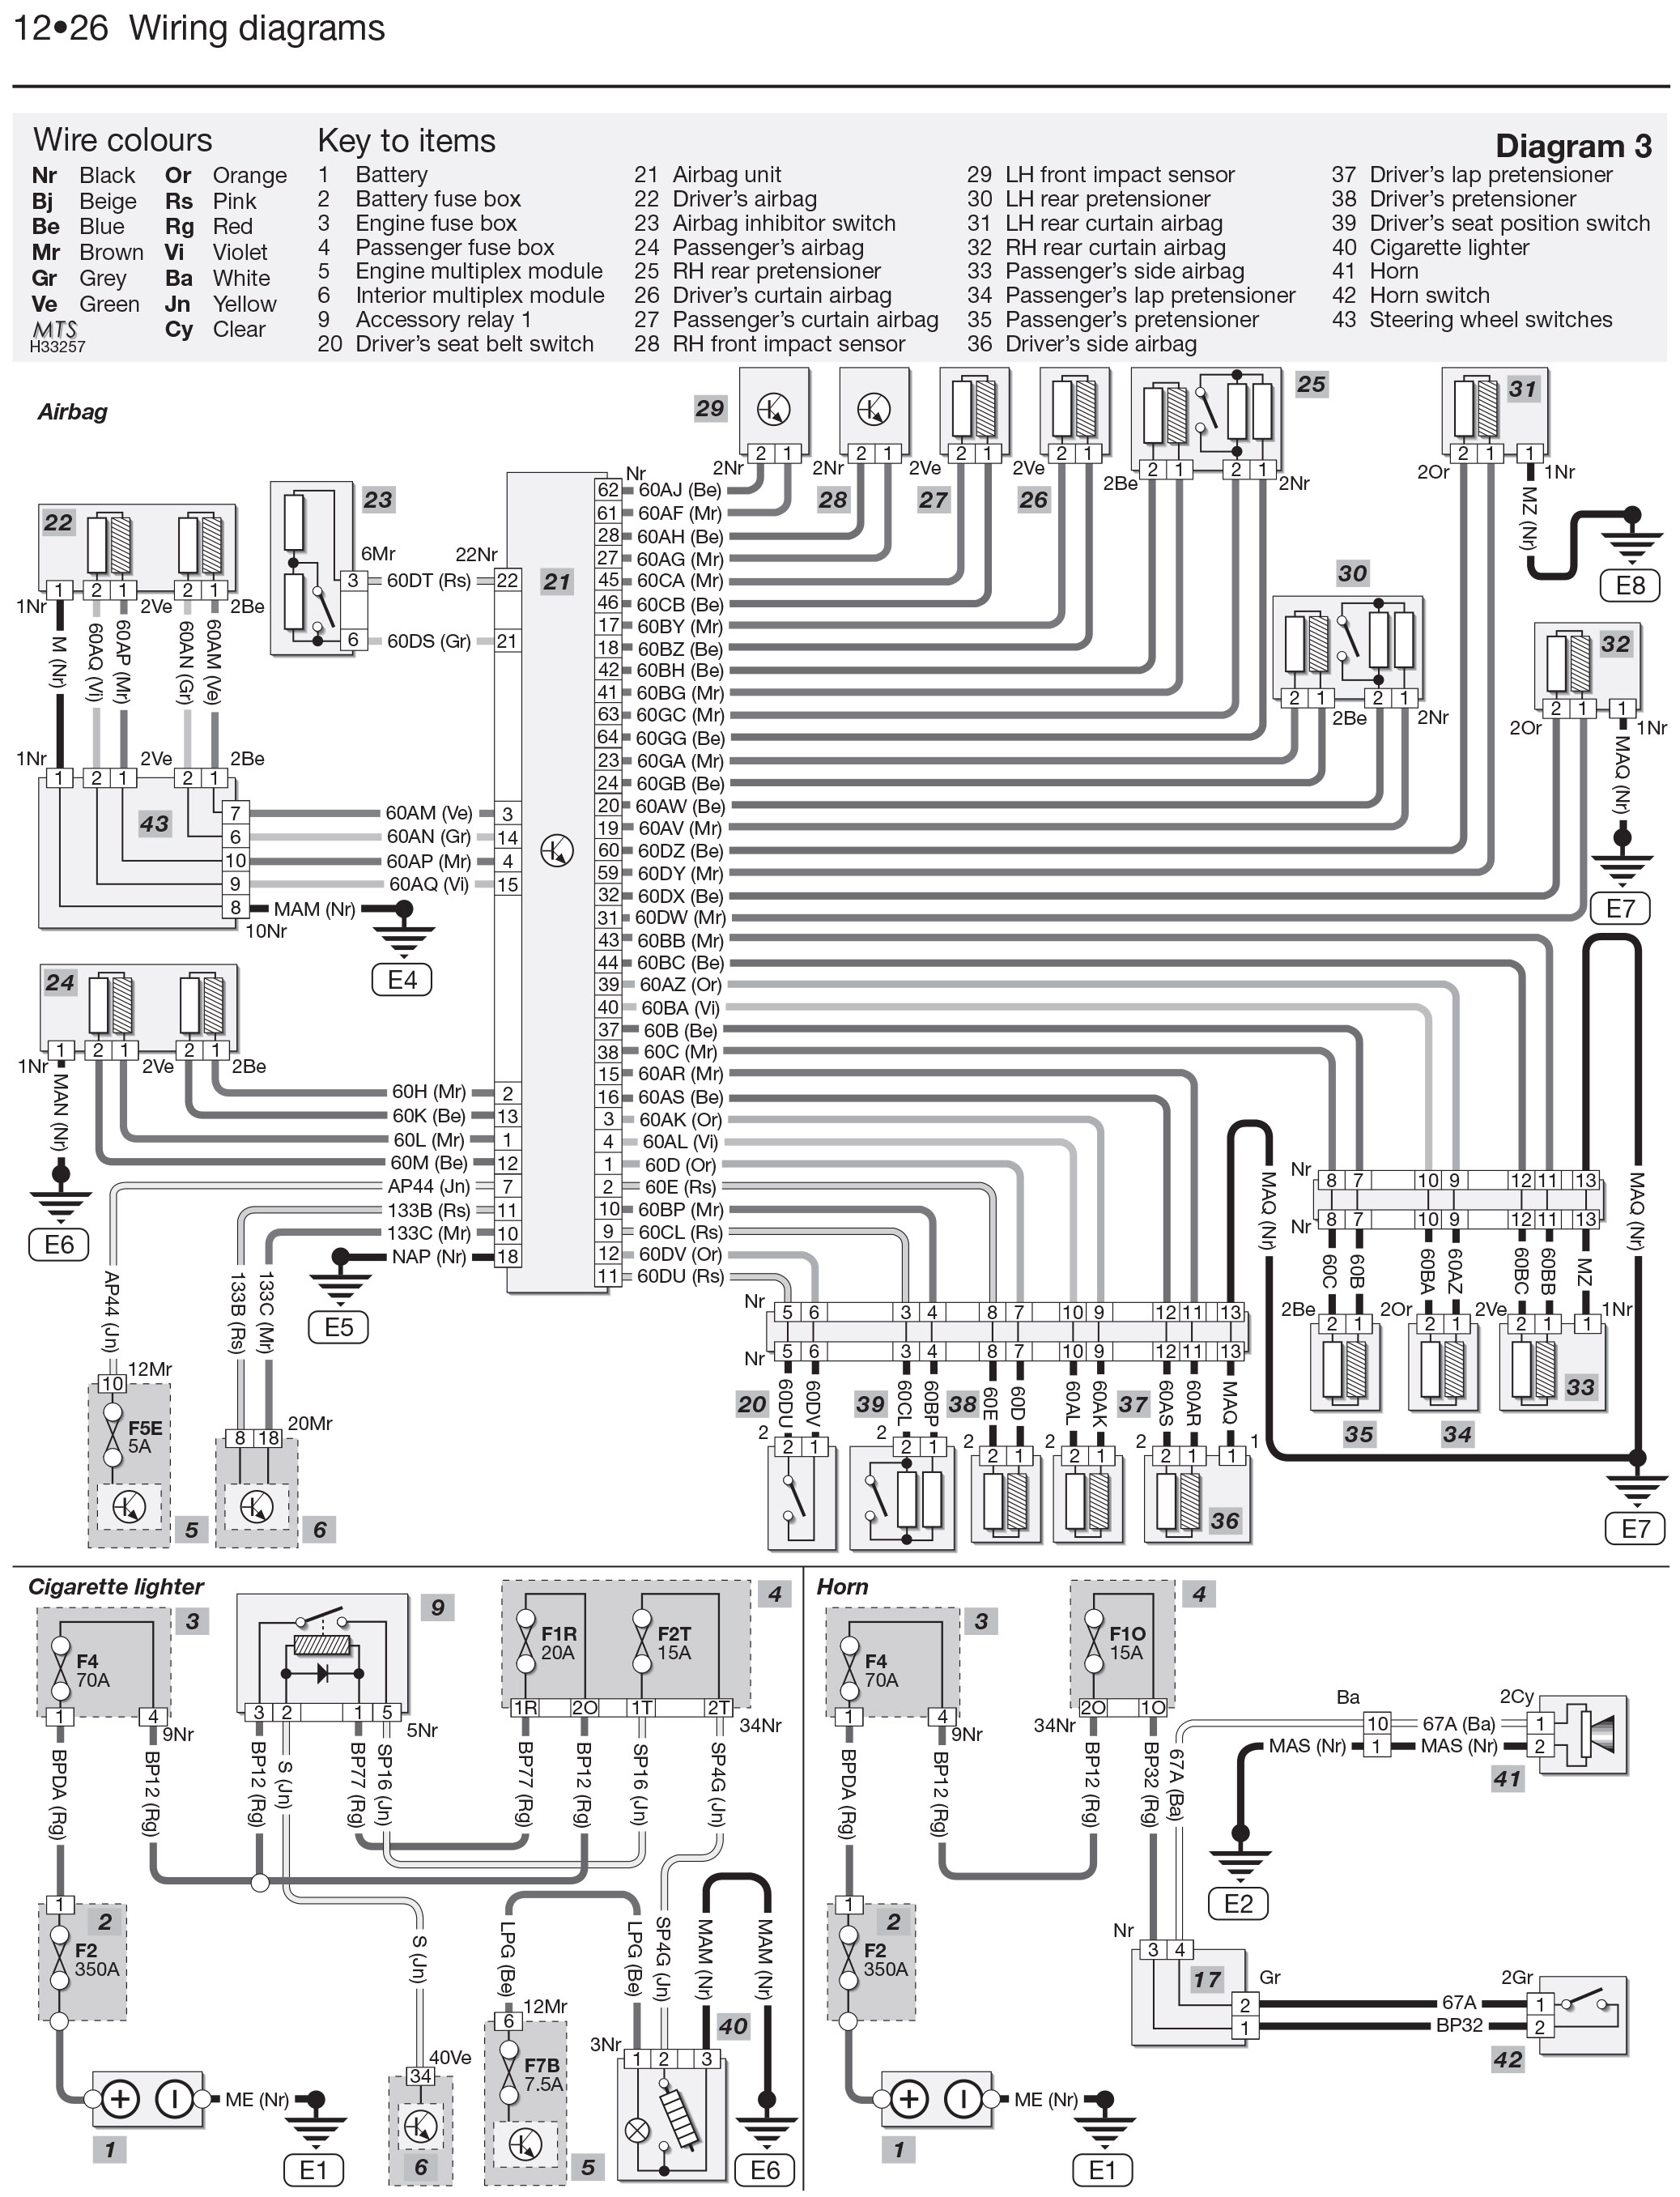 [SCHEMATICS_49CH]  DIAGRAM> 2004 Renault Scenic Wiring Diagram FULL Version HD Quality Wiring  Diagram - DIAGRAMOFHEART.GALLERIADUOMO.IT | Renault Rx4 Wiring Diagram |  | Diagram Database